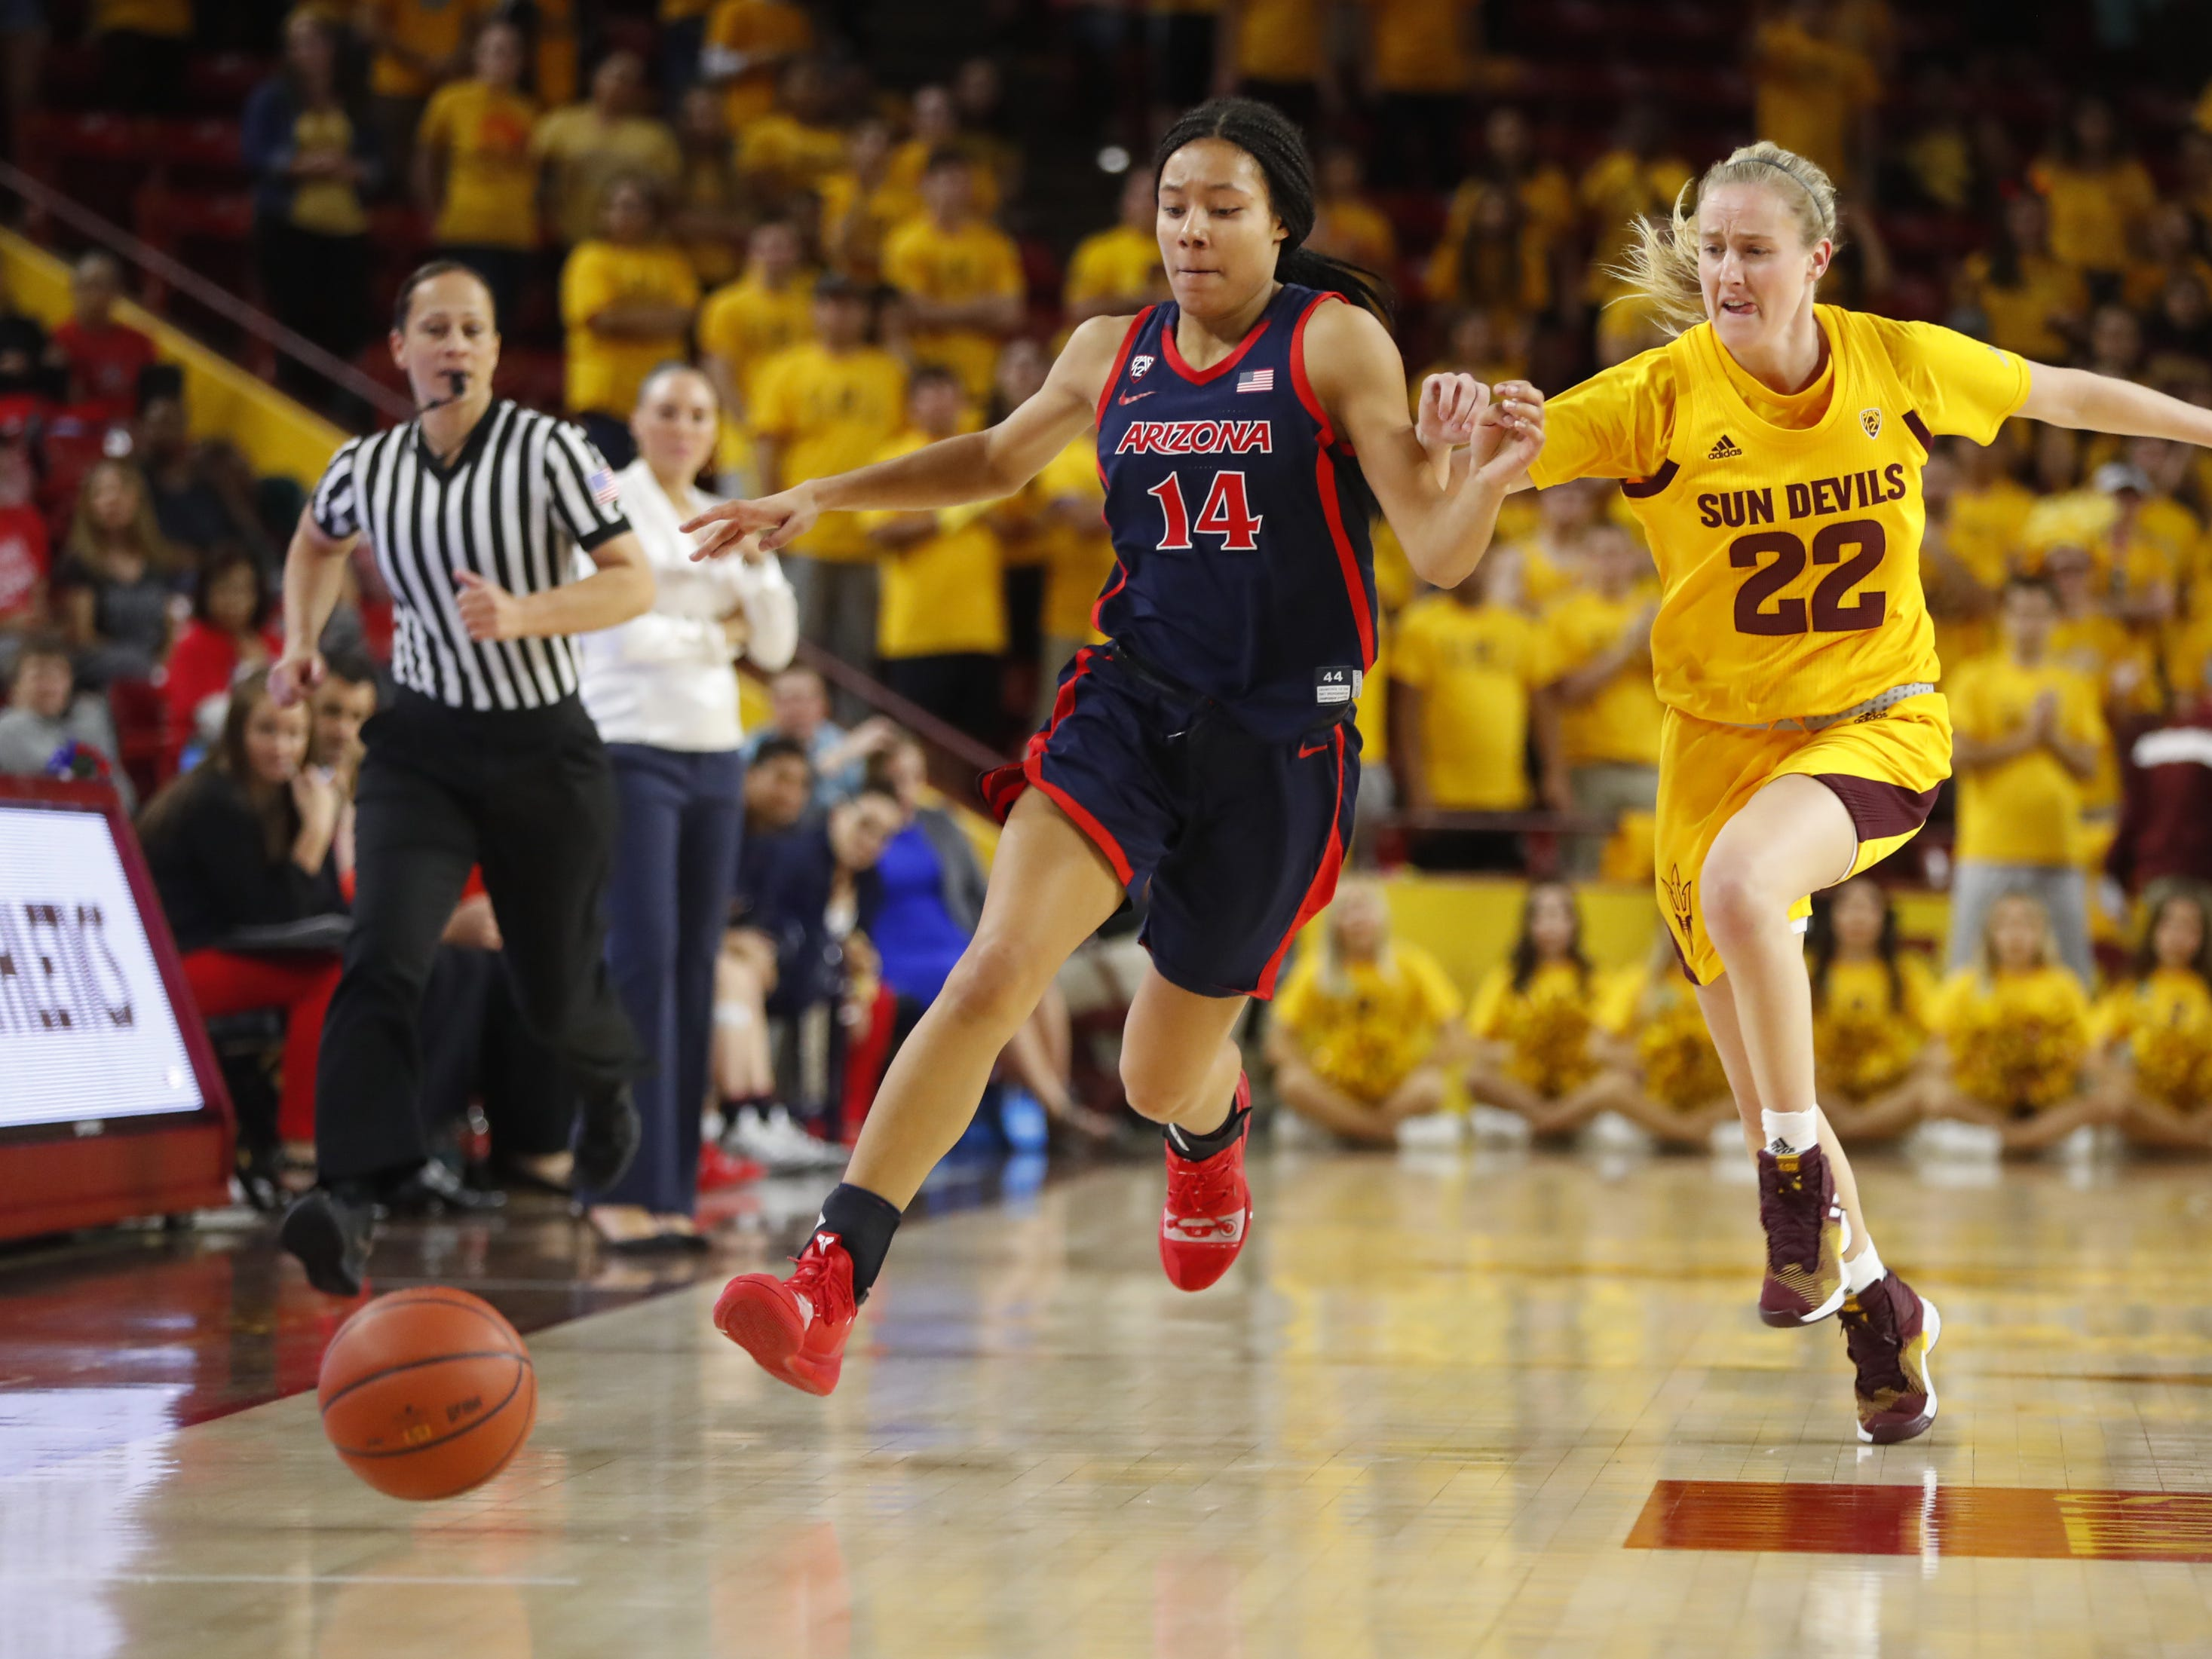 Arizona's Sam Thomas (14) and ASU's Courtney Ekmark (22) chase down a loose ball during the second half at Wells Fargo Arena in Tempe, Ariz. on February 1, 2019.